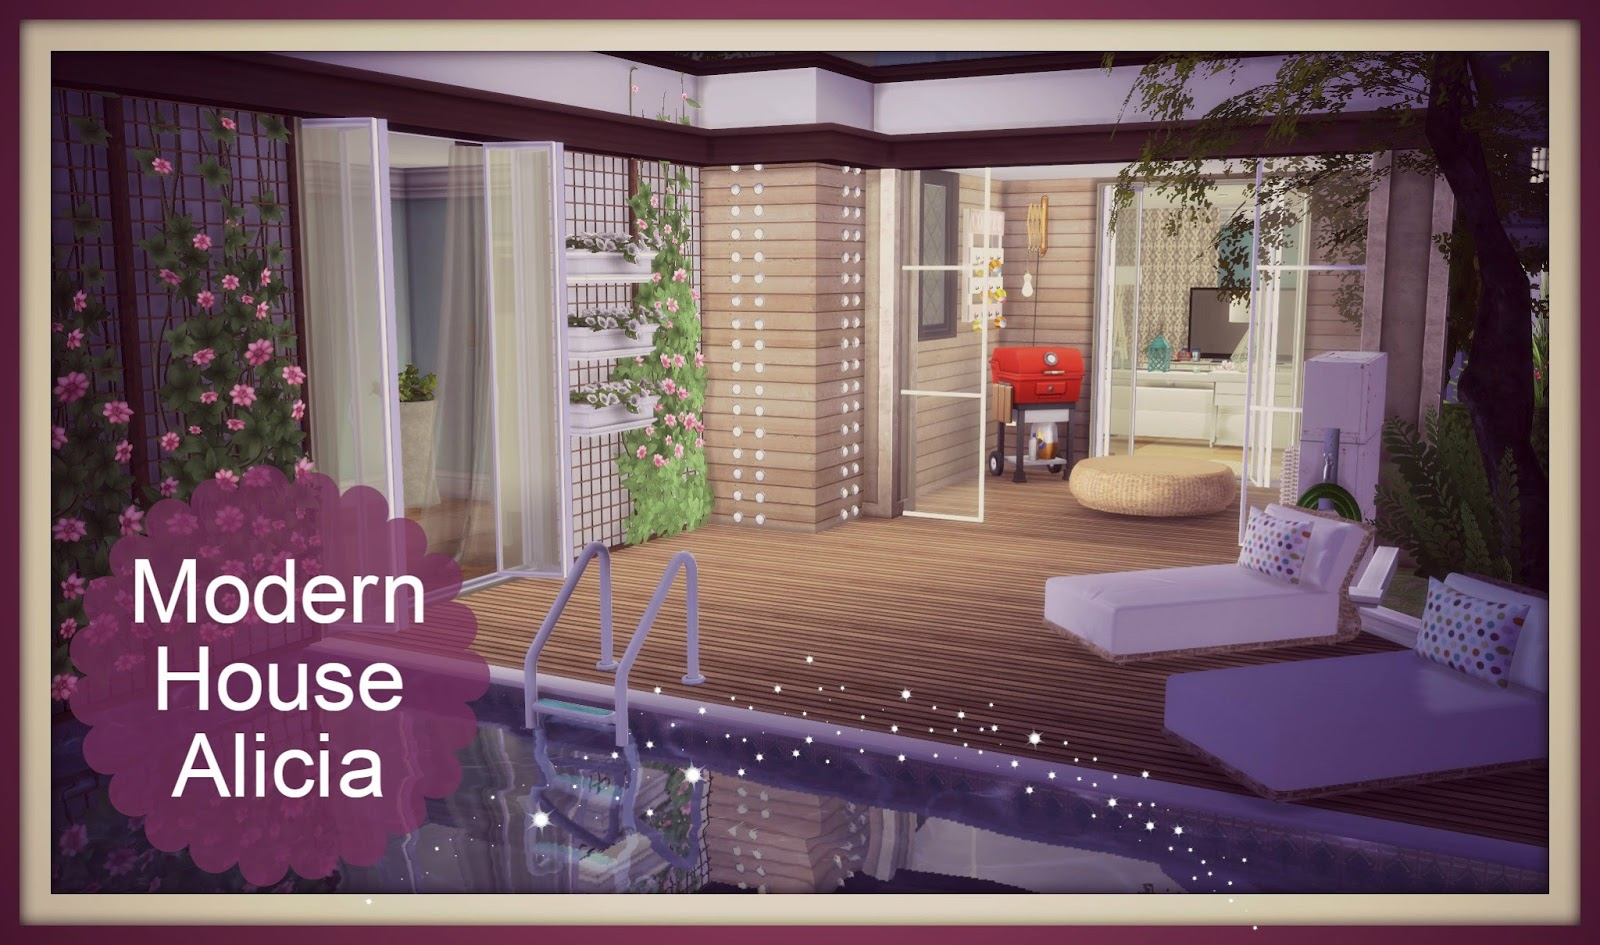 Sims 4 building on newcrest modern house dinha for The sims 4 house designs modern villa